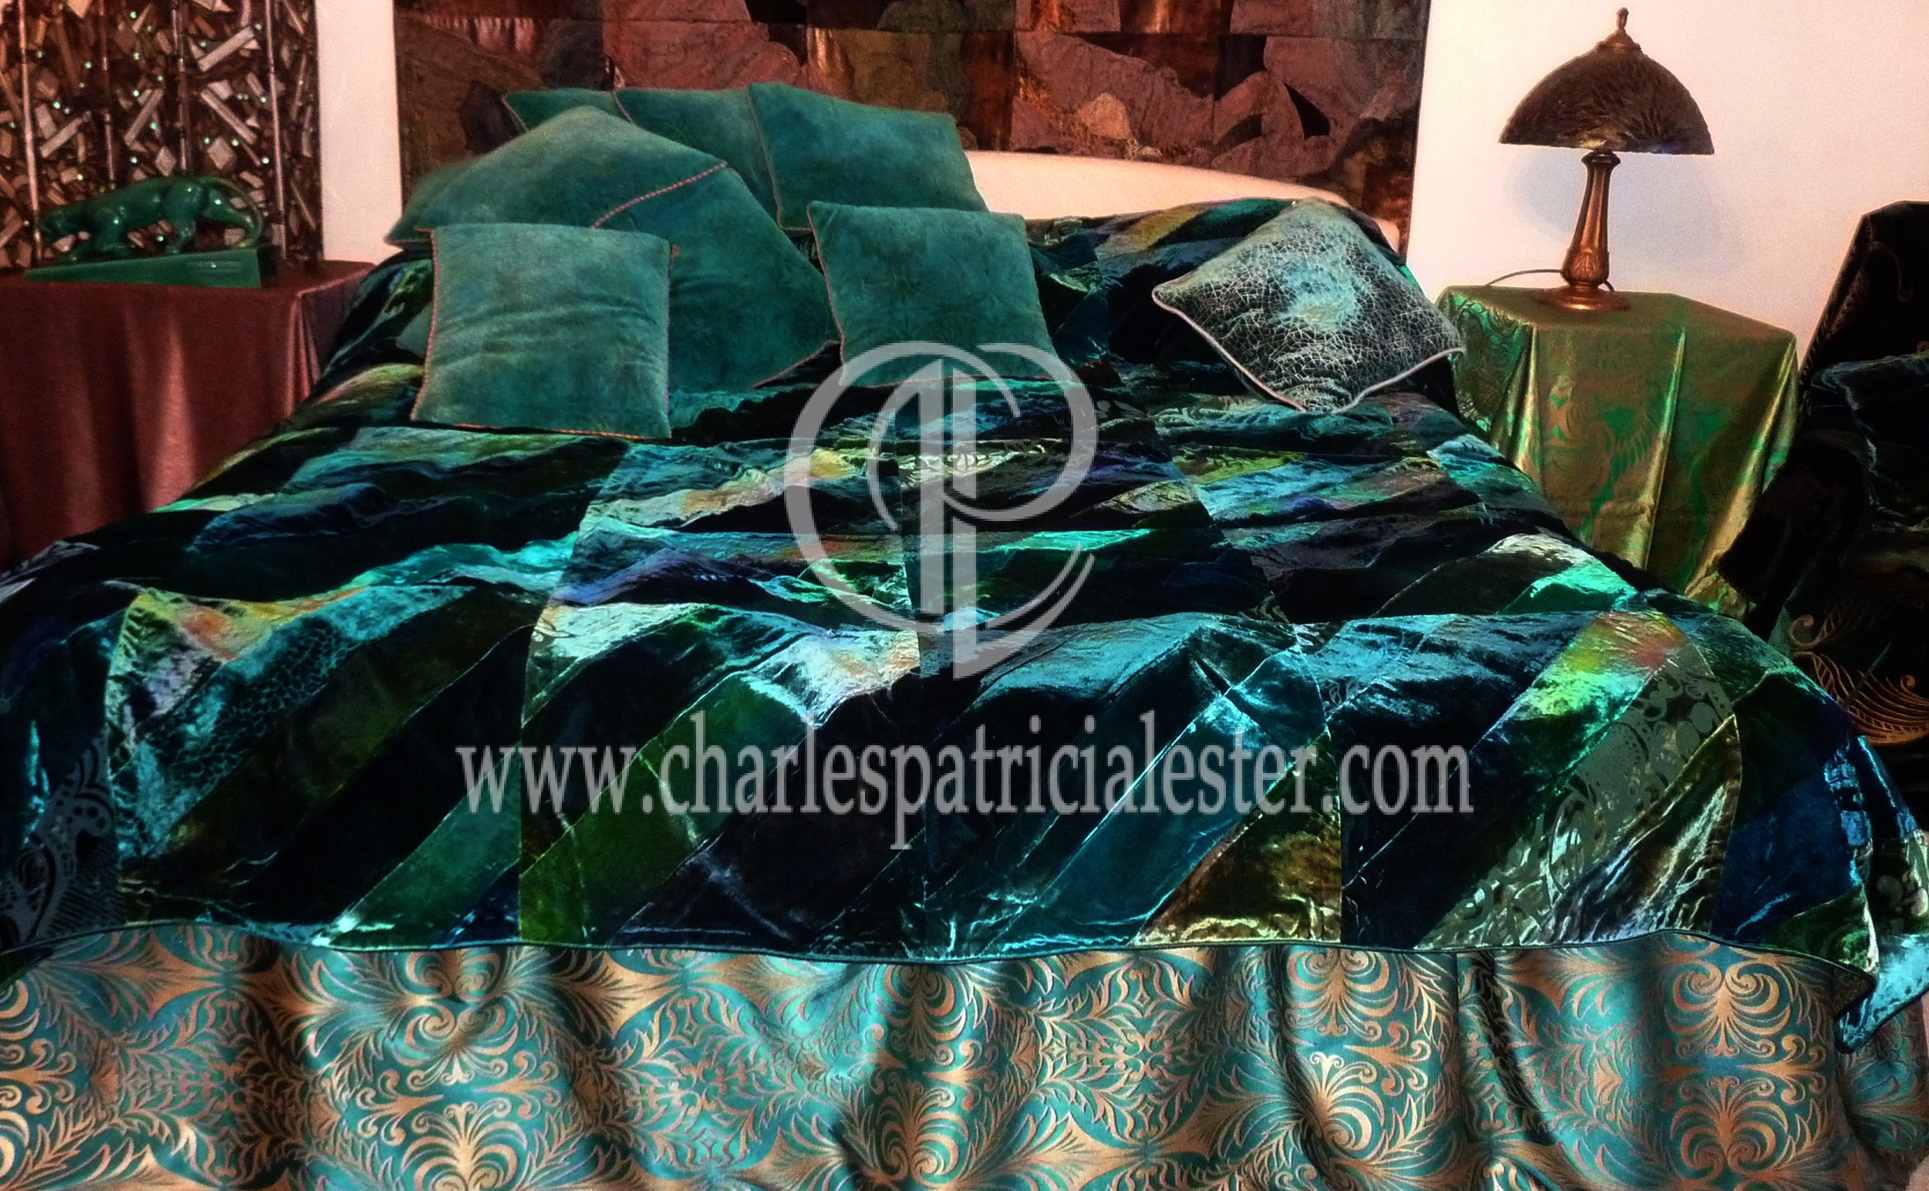 Luxurious emerald green velvet bedcover